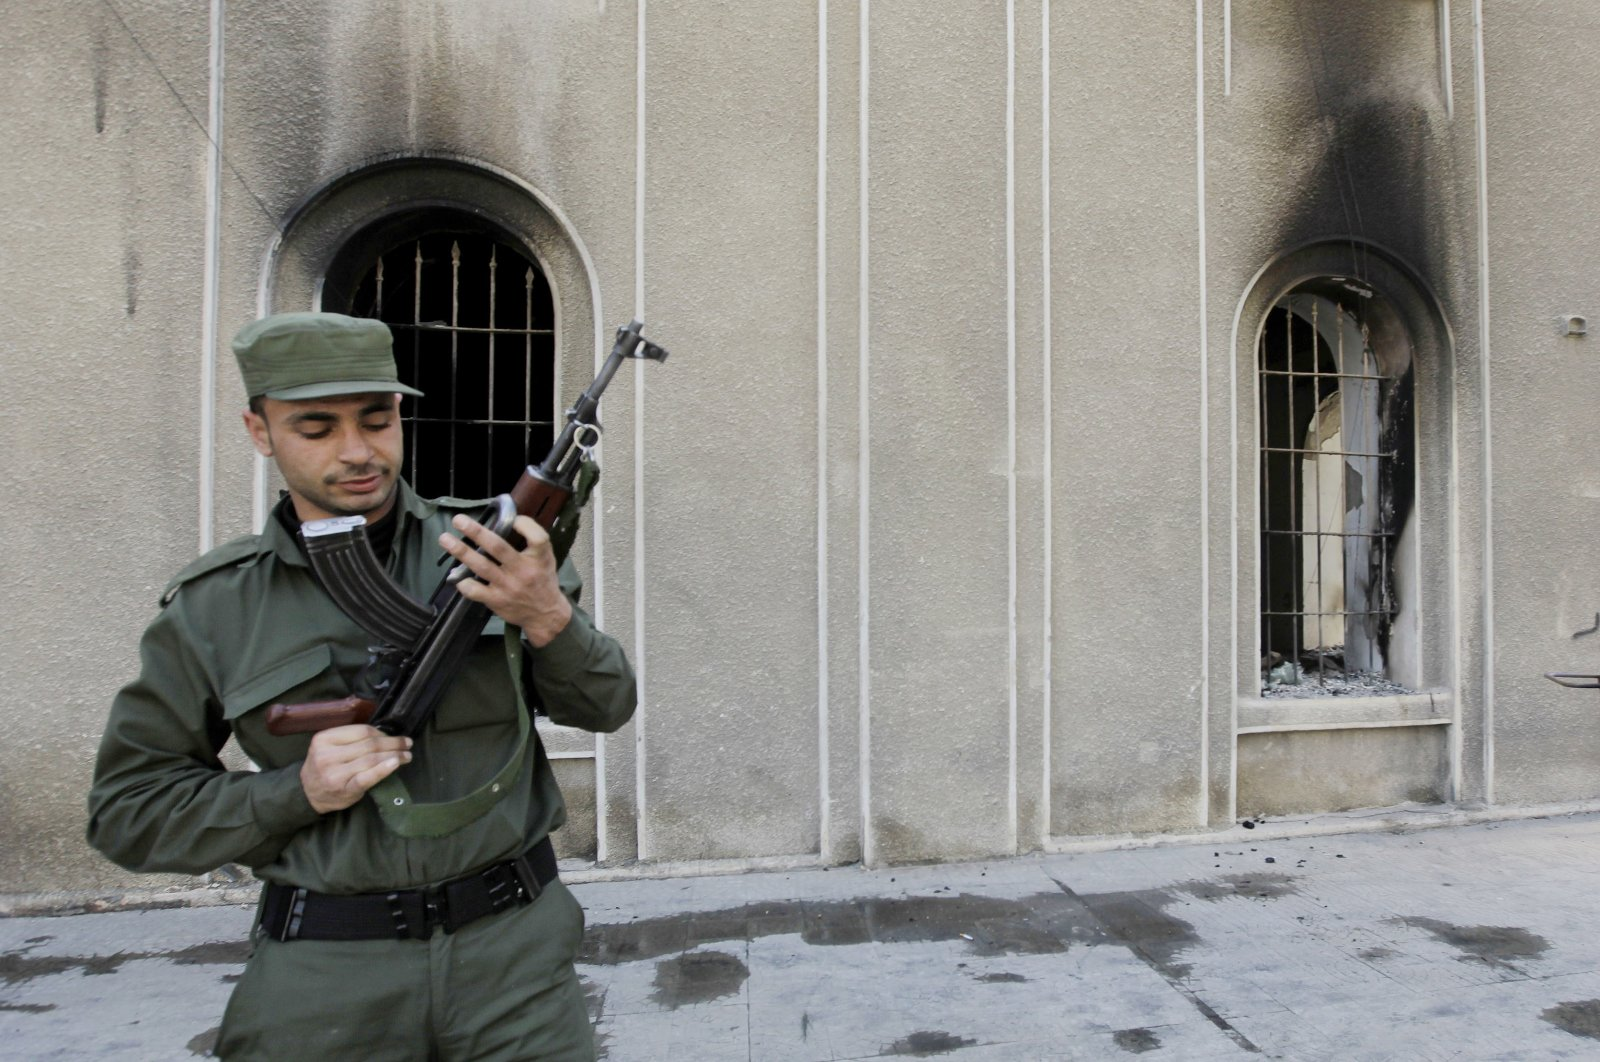 A Syrian regime soldier checks his AK-47 as he stands in front the burned court building that was set on fire by anti-regime protesters, in the southern city of Daraa, Syria, March 21, 2011. (AP Photo)